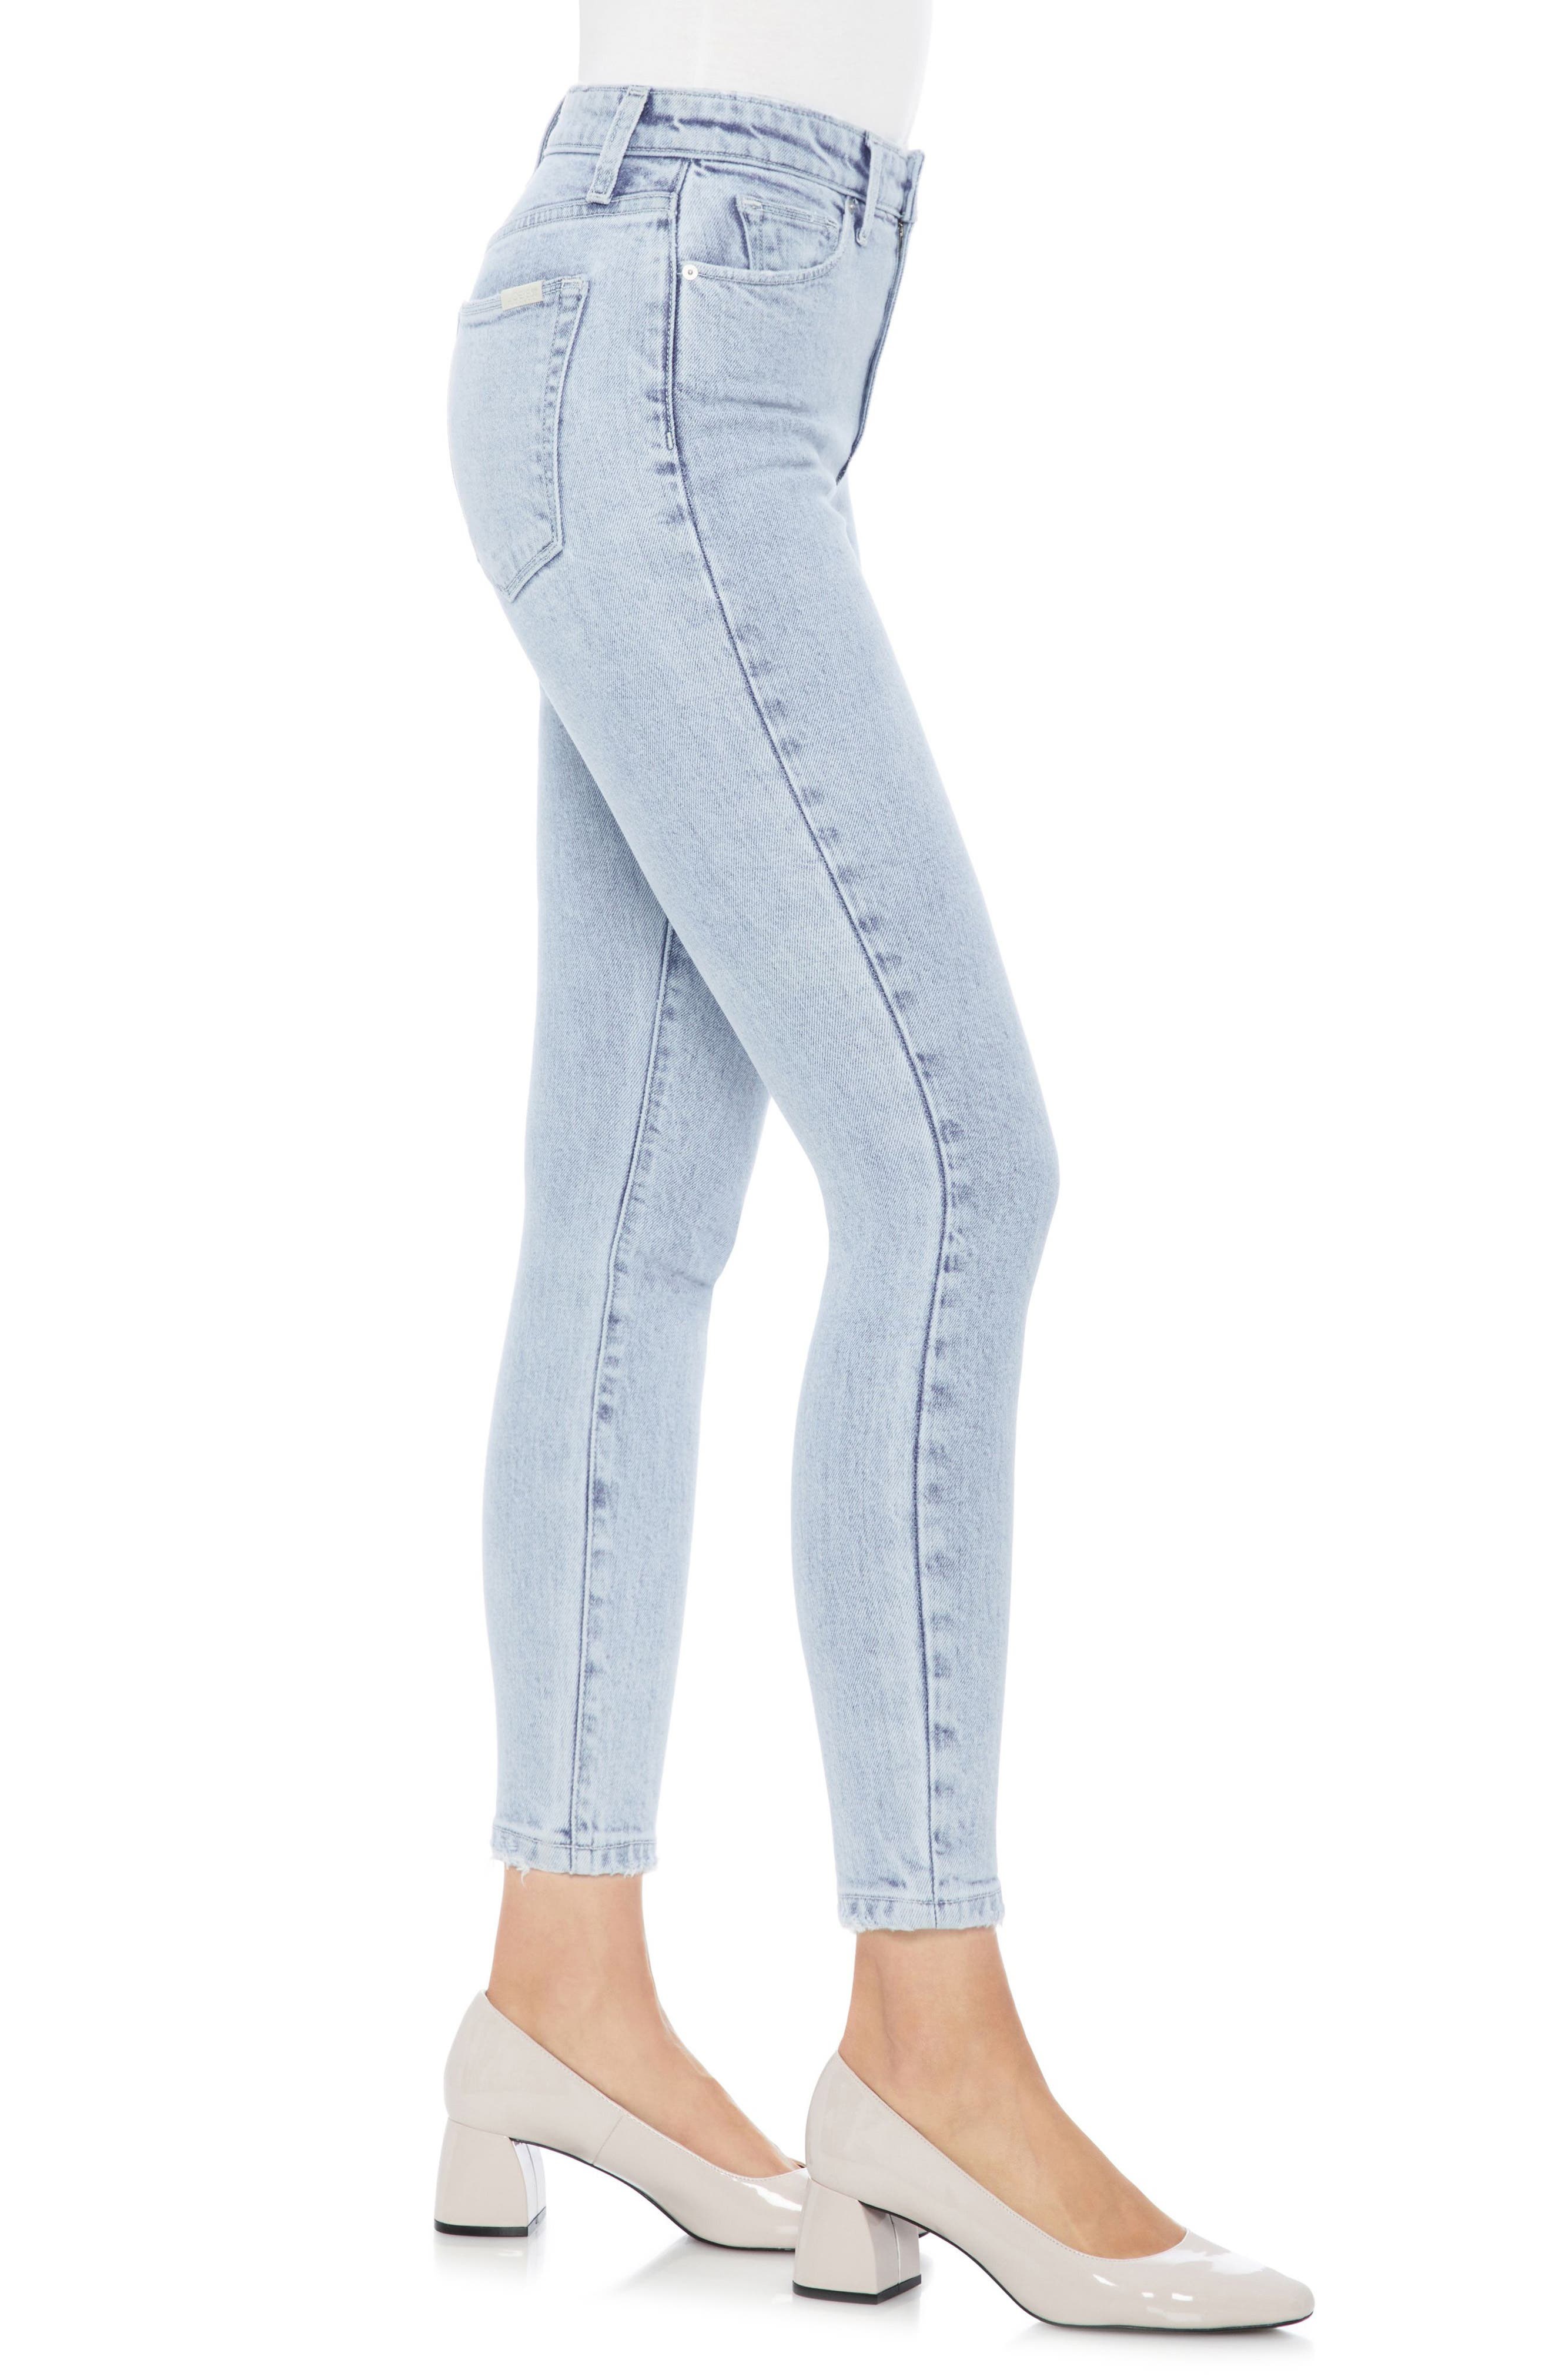 Bella High Waist Crop Skinny Jeans,                             Alternate thumbnail 3, color,